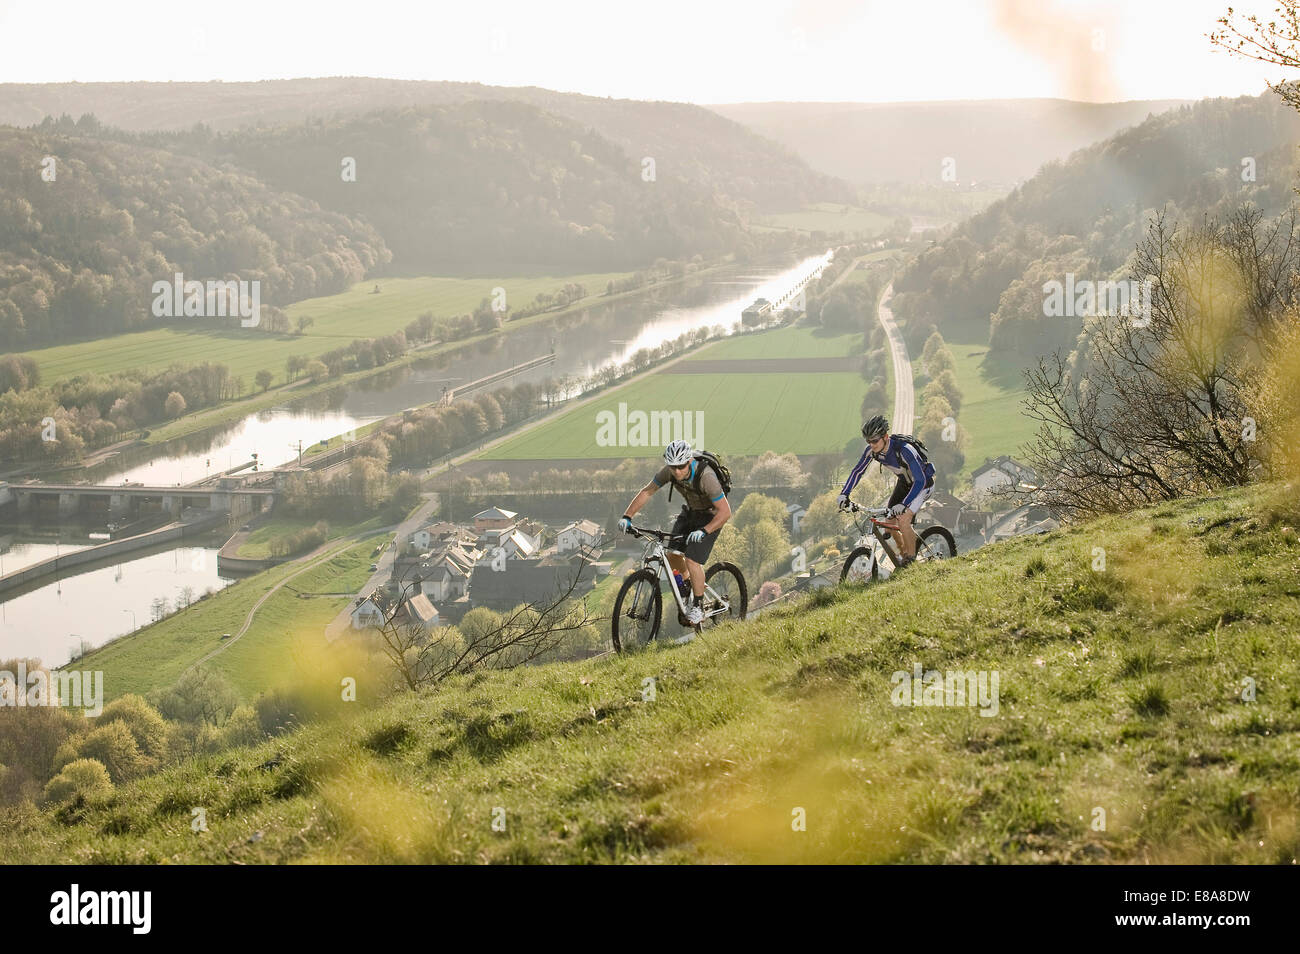 Young men mountainbiking at sunset, Bavaria, Germany - Stock Image